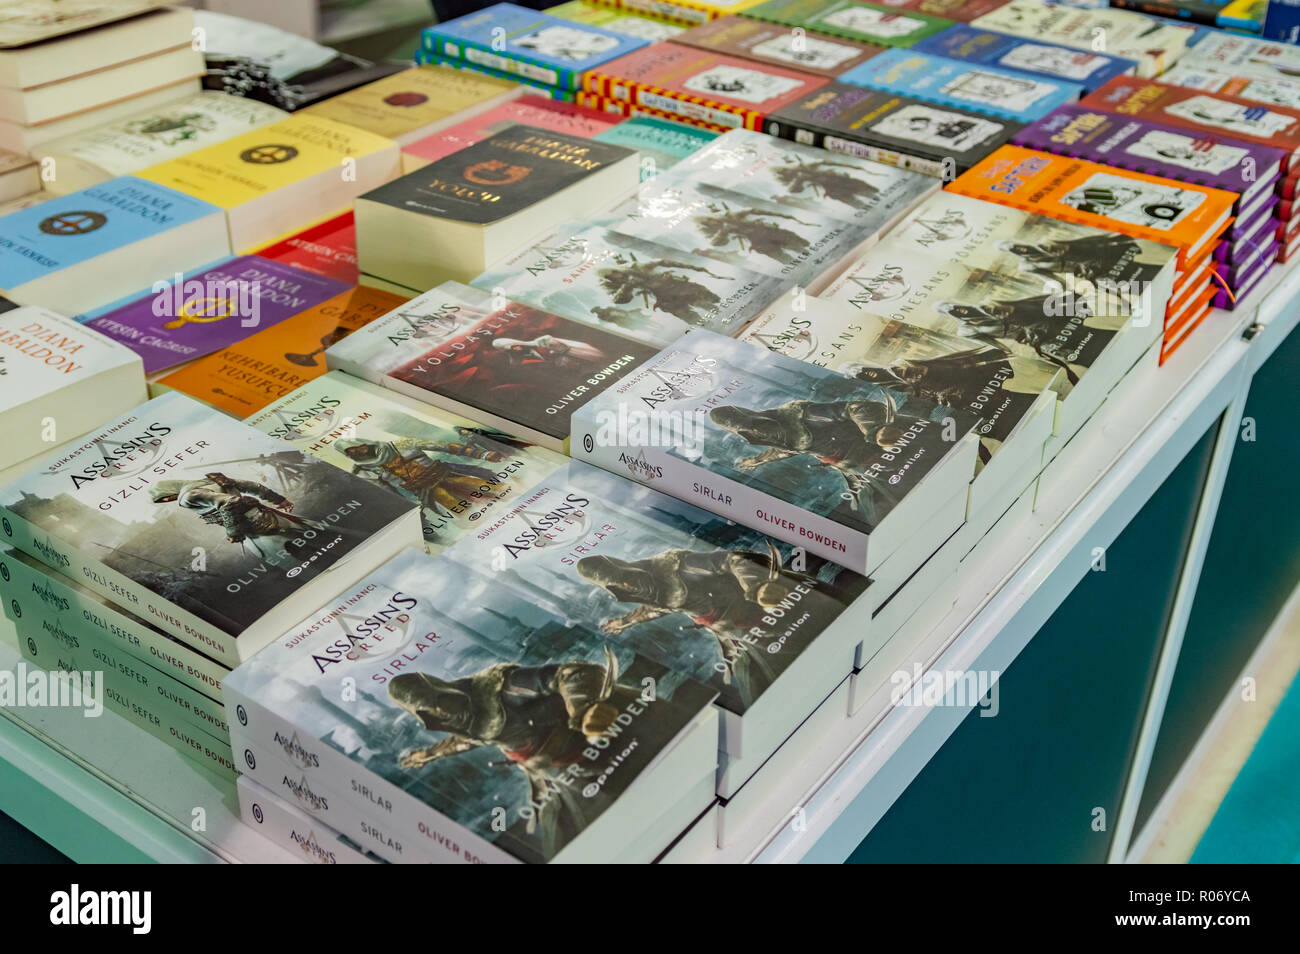 Eskisehir, Turkey - October 09, 2018: Several Assassin's Creed books exhibited on the stand at Eskisehir Book Fair - Stock Image